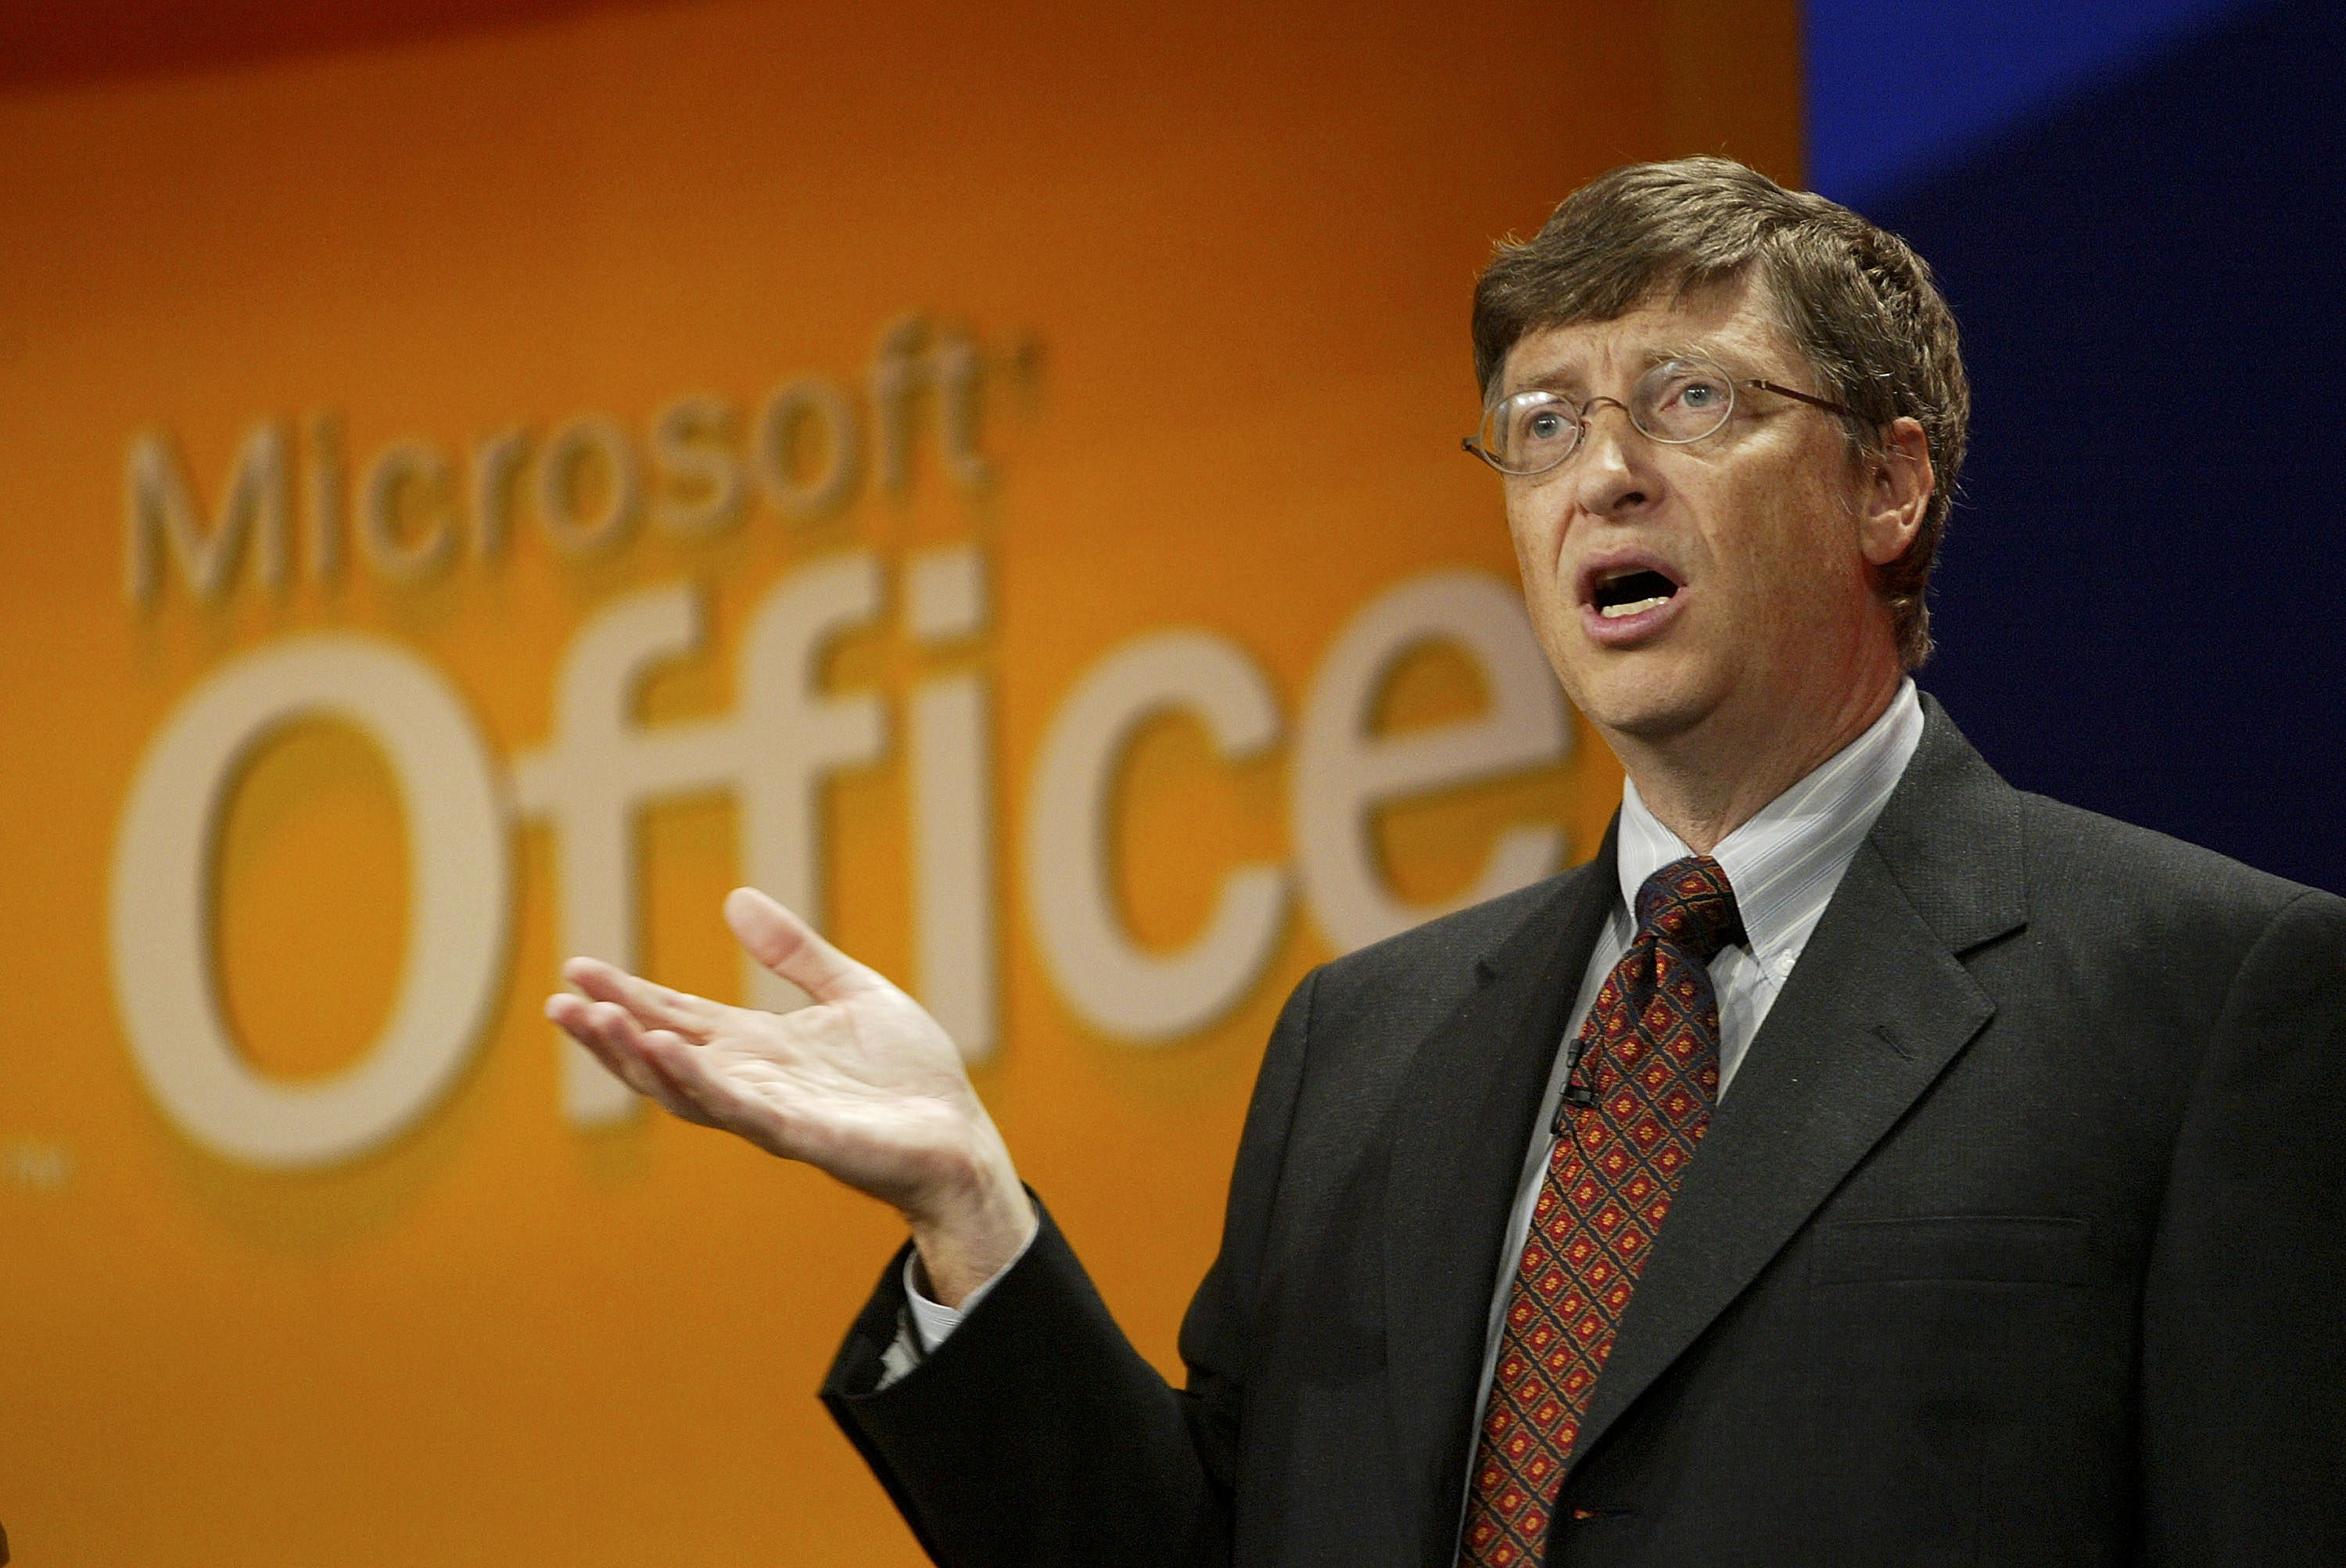 bill gates before microsoft essay Before gates created this software, computers were often machines that could only be used by computer scientists and not everyone microsoft, his company, was the first operating system that had a graphical user interface.